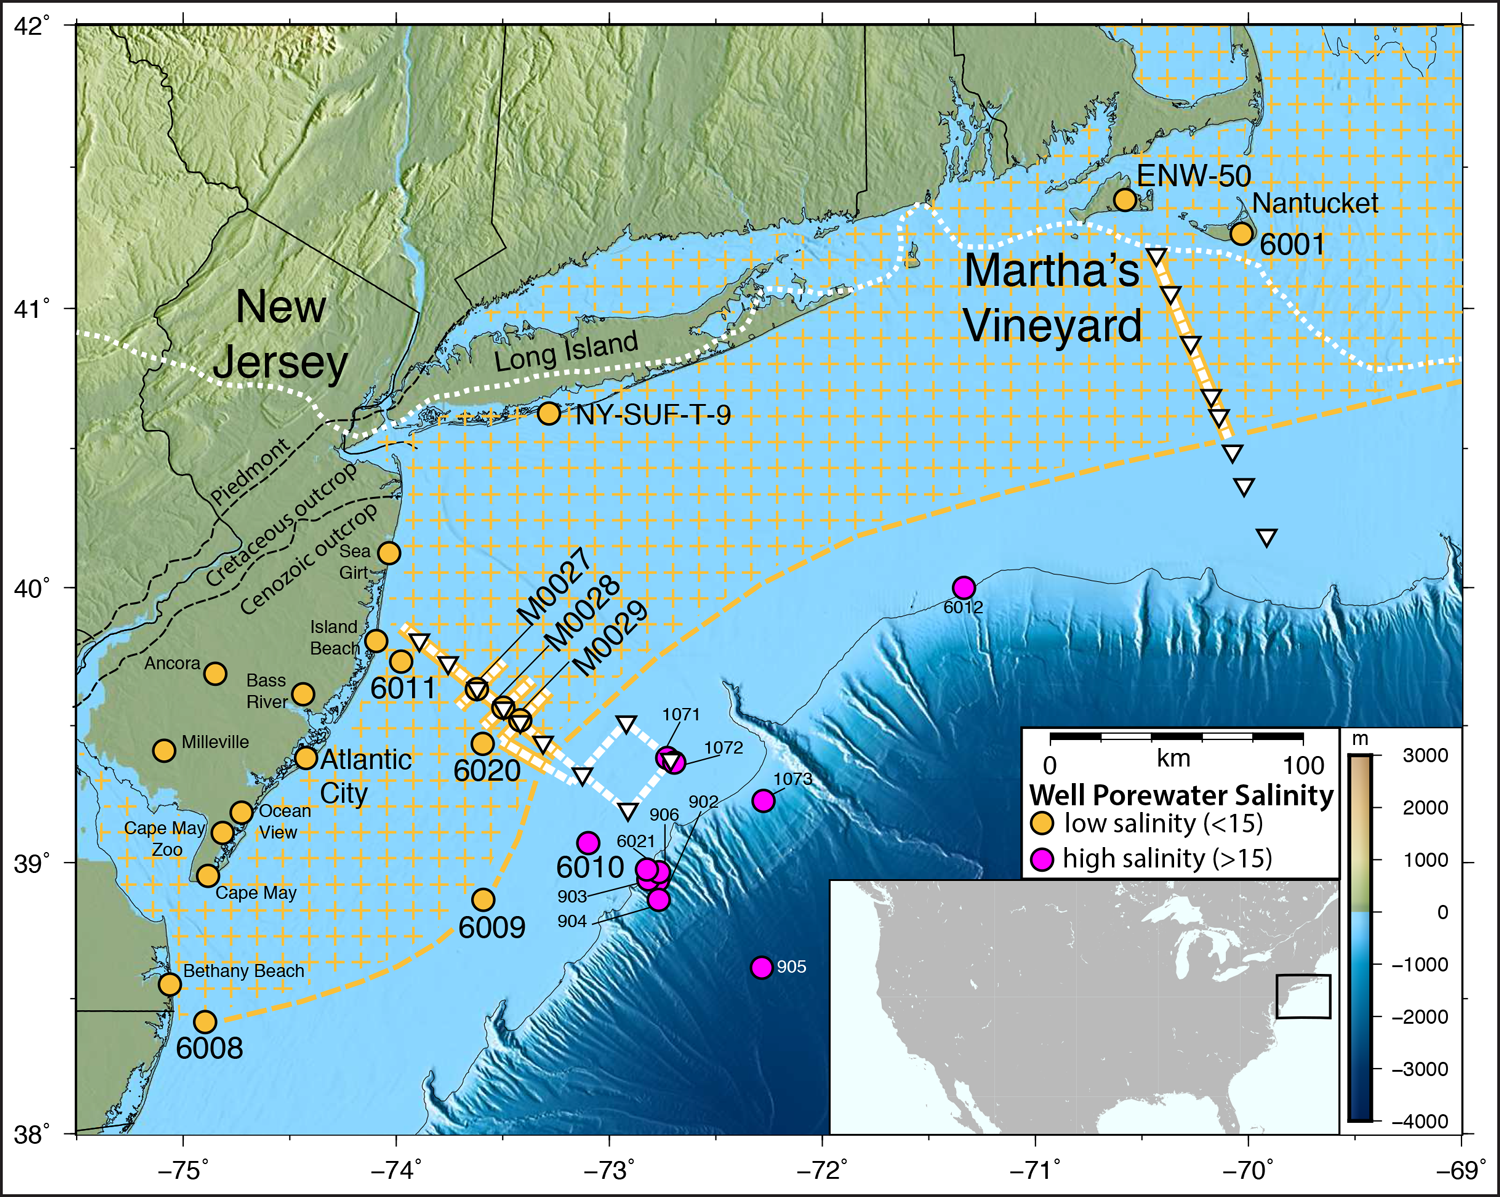 Map of the U.S. East Coast showing two transect lines where a team imaged under the seafloor and found pockets of fresh water that may be connected into a huge aquifer system